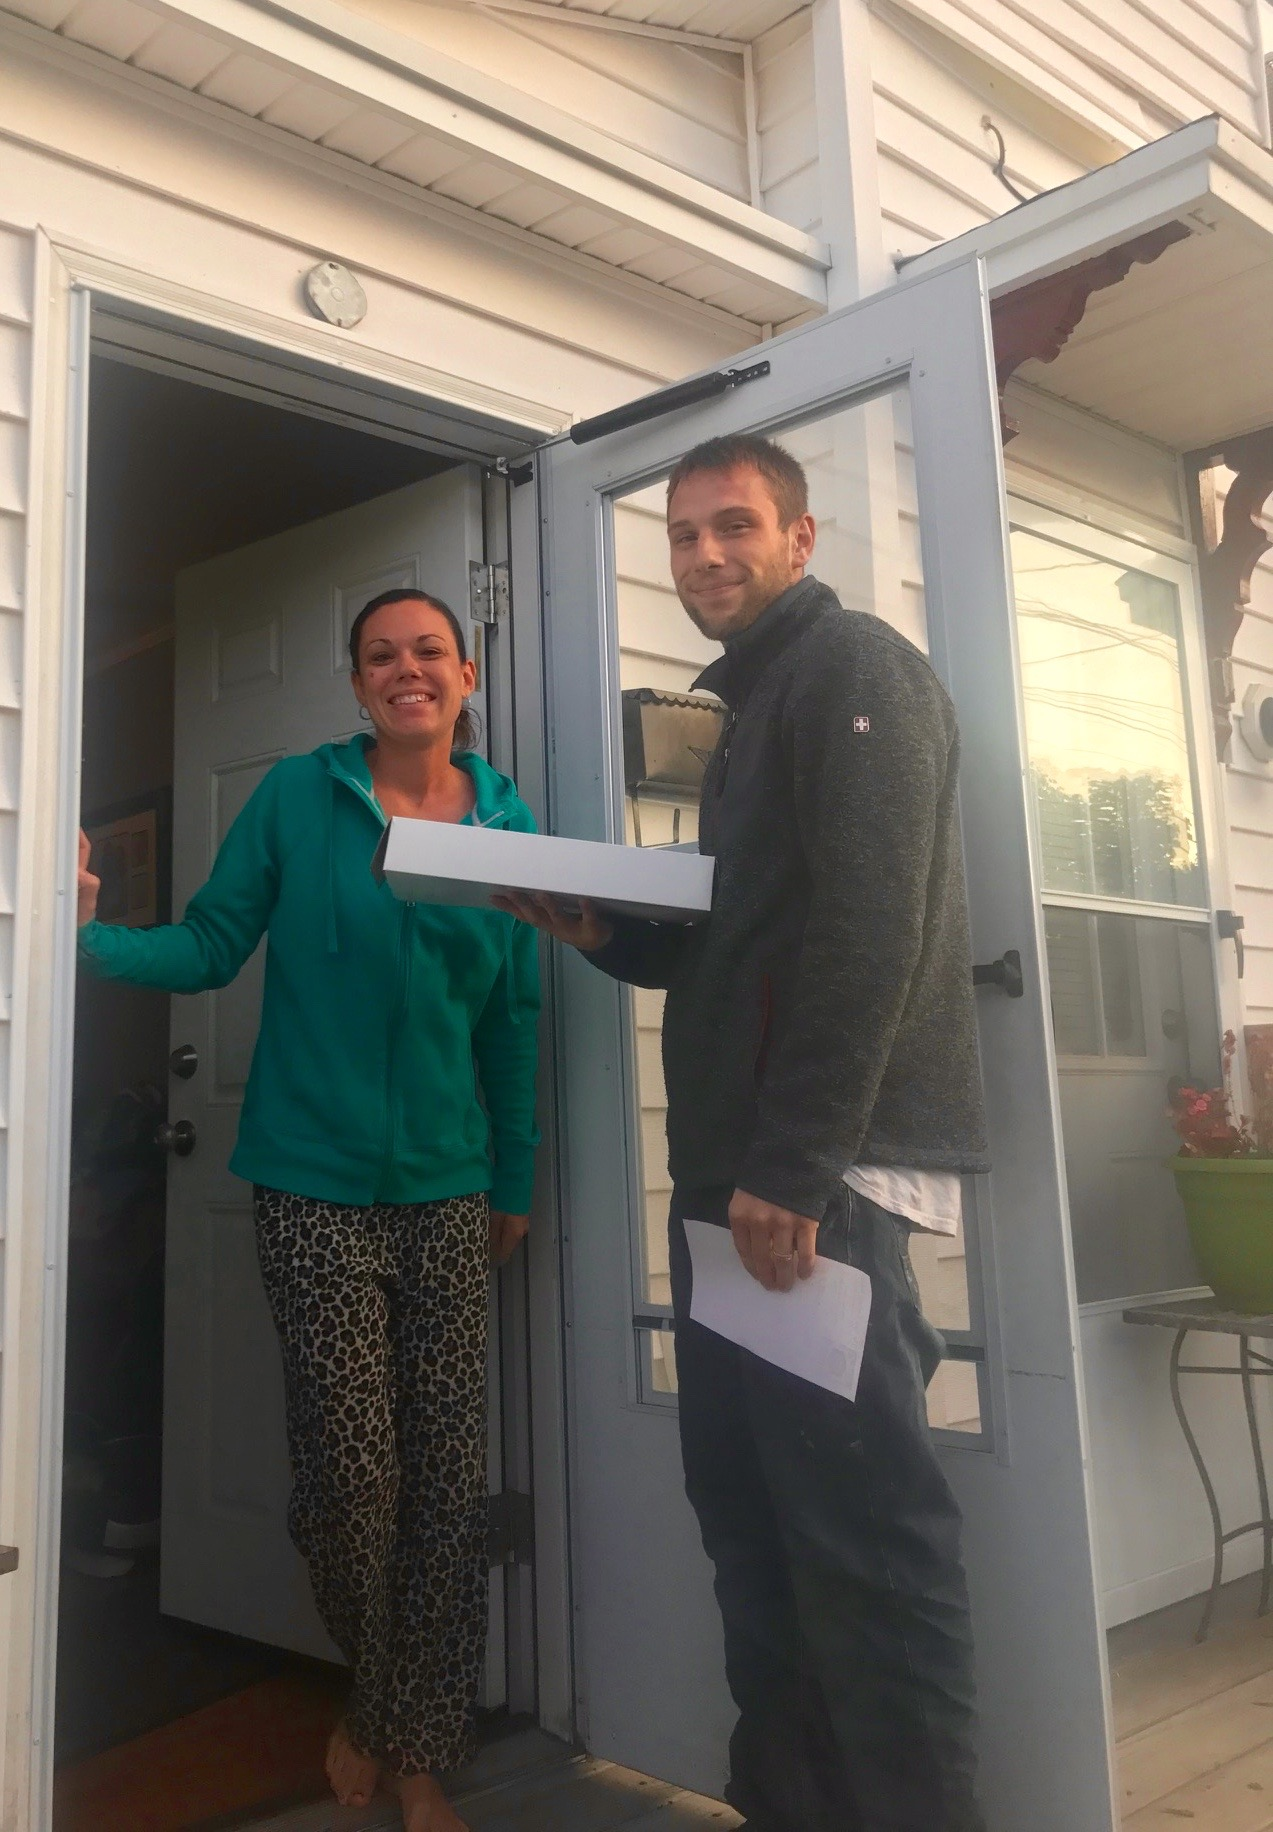 Ben Dube, owner of New England Bakery, makes his first residential donut delivery to Kim Parent on Saturday in Sanford. The bakery, which serves a number of commercial accounts, began delivery services to Sanford and Springvale residents on the Labor Day weekend. COURTESY PHOTO/New England Bakery